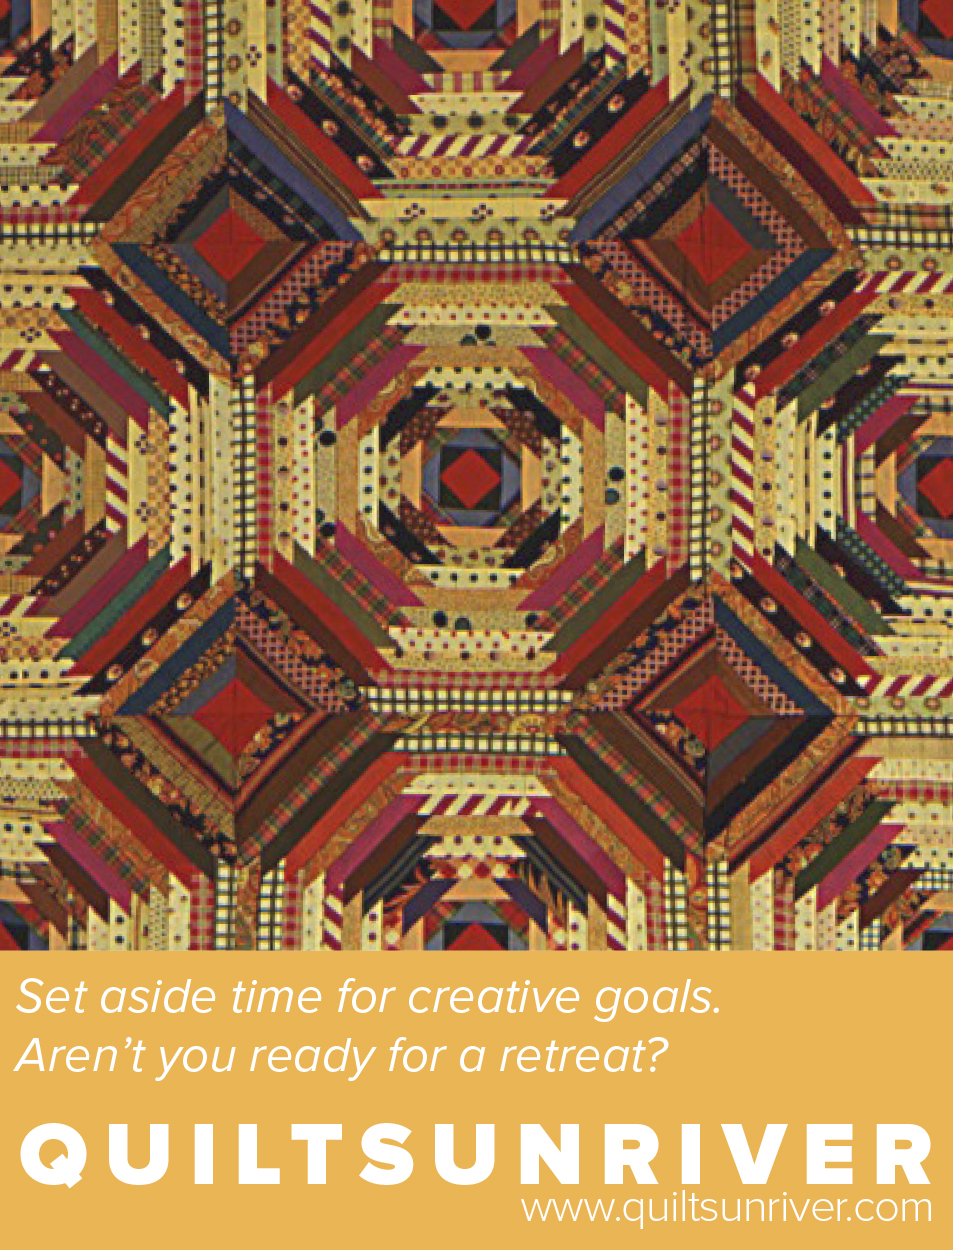 Set aside time for creative goals.